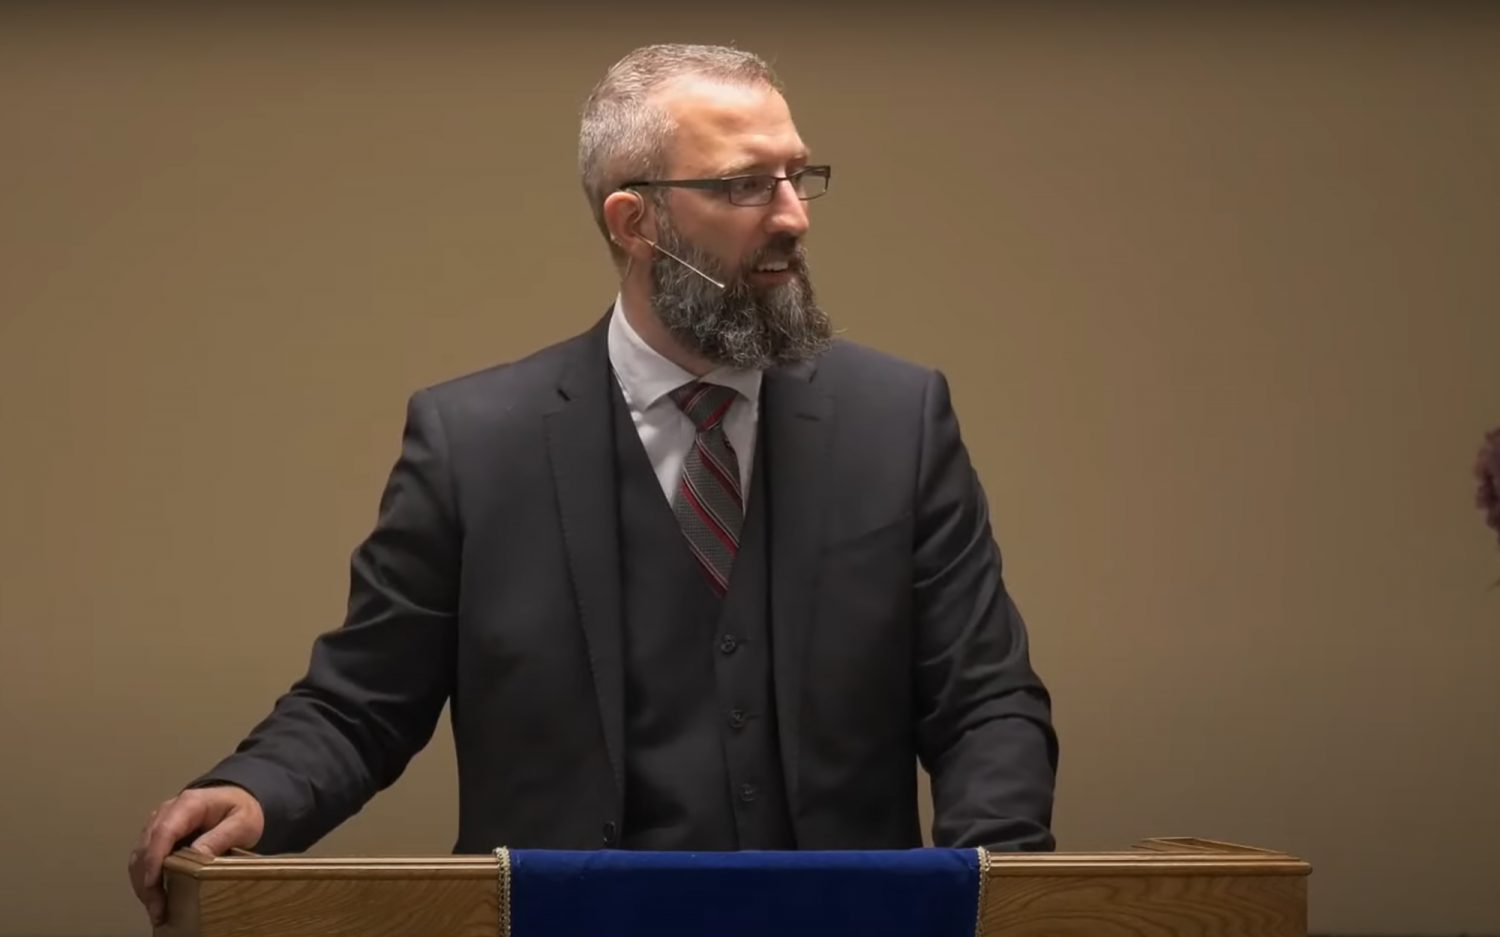 Canadian pastor jailed over pandemic violations